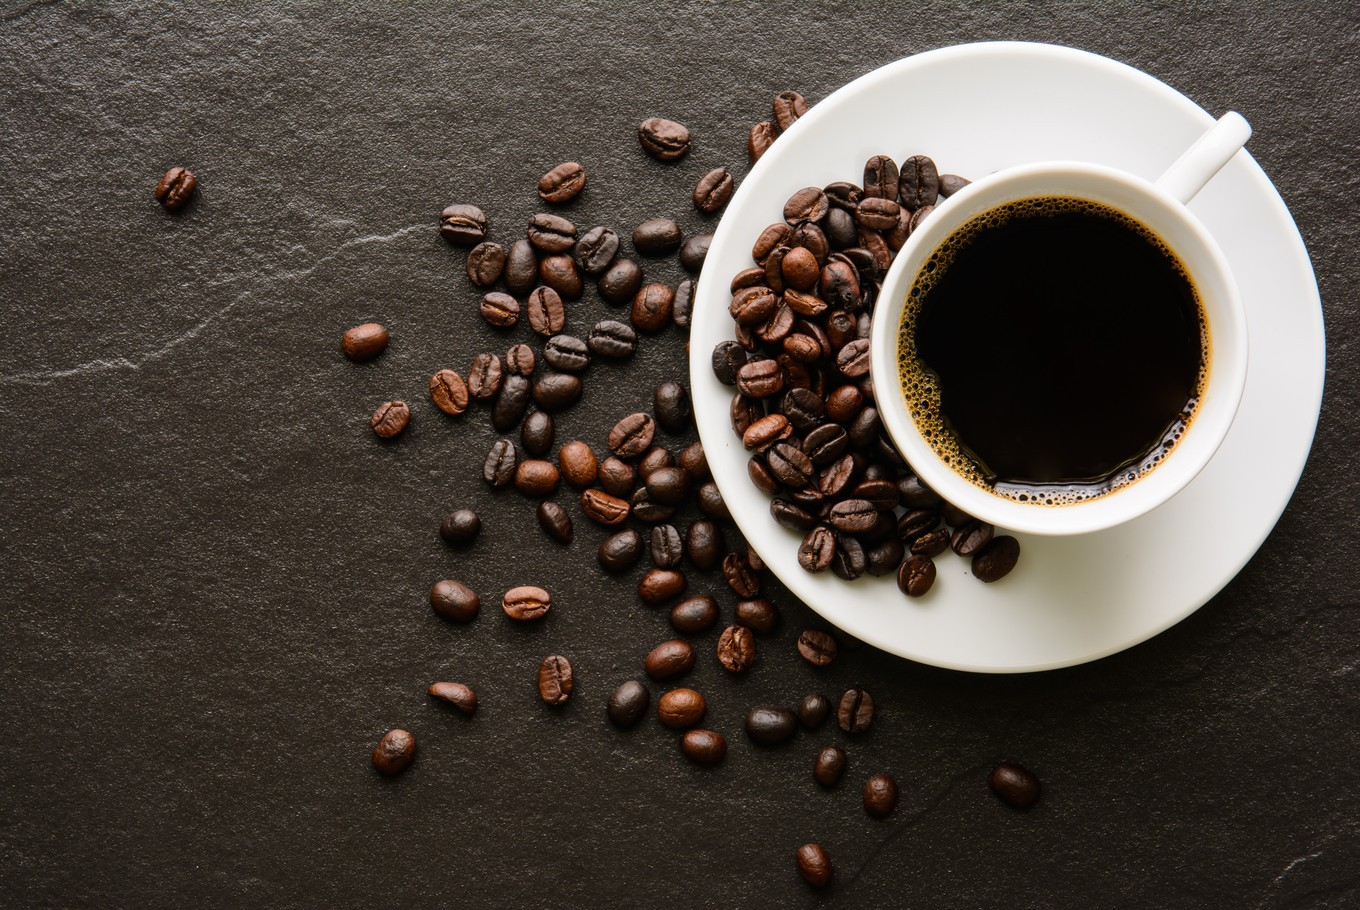 Crazy about Indonesian coffee? Here are the basics of java